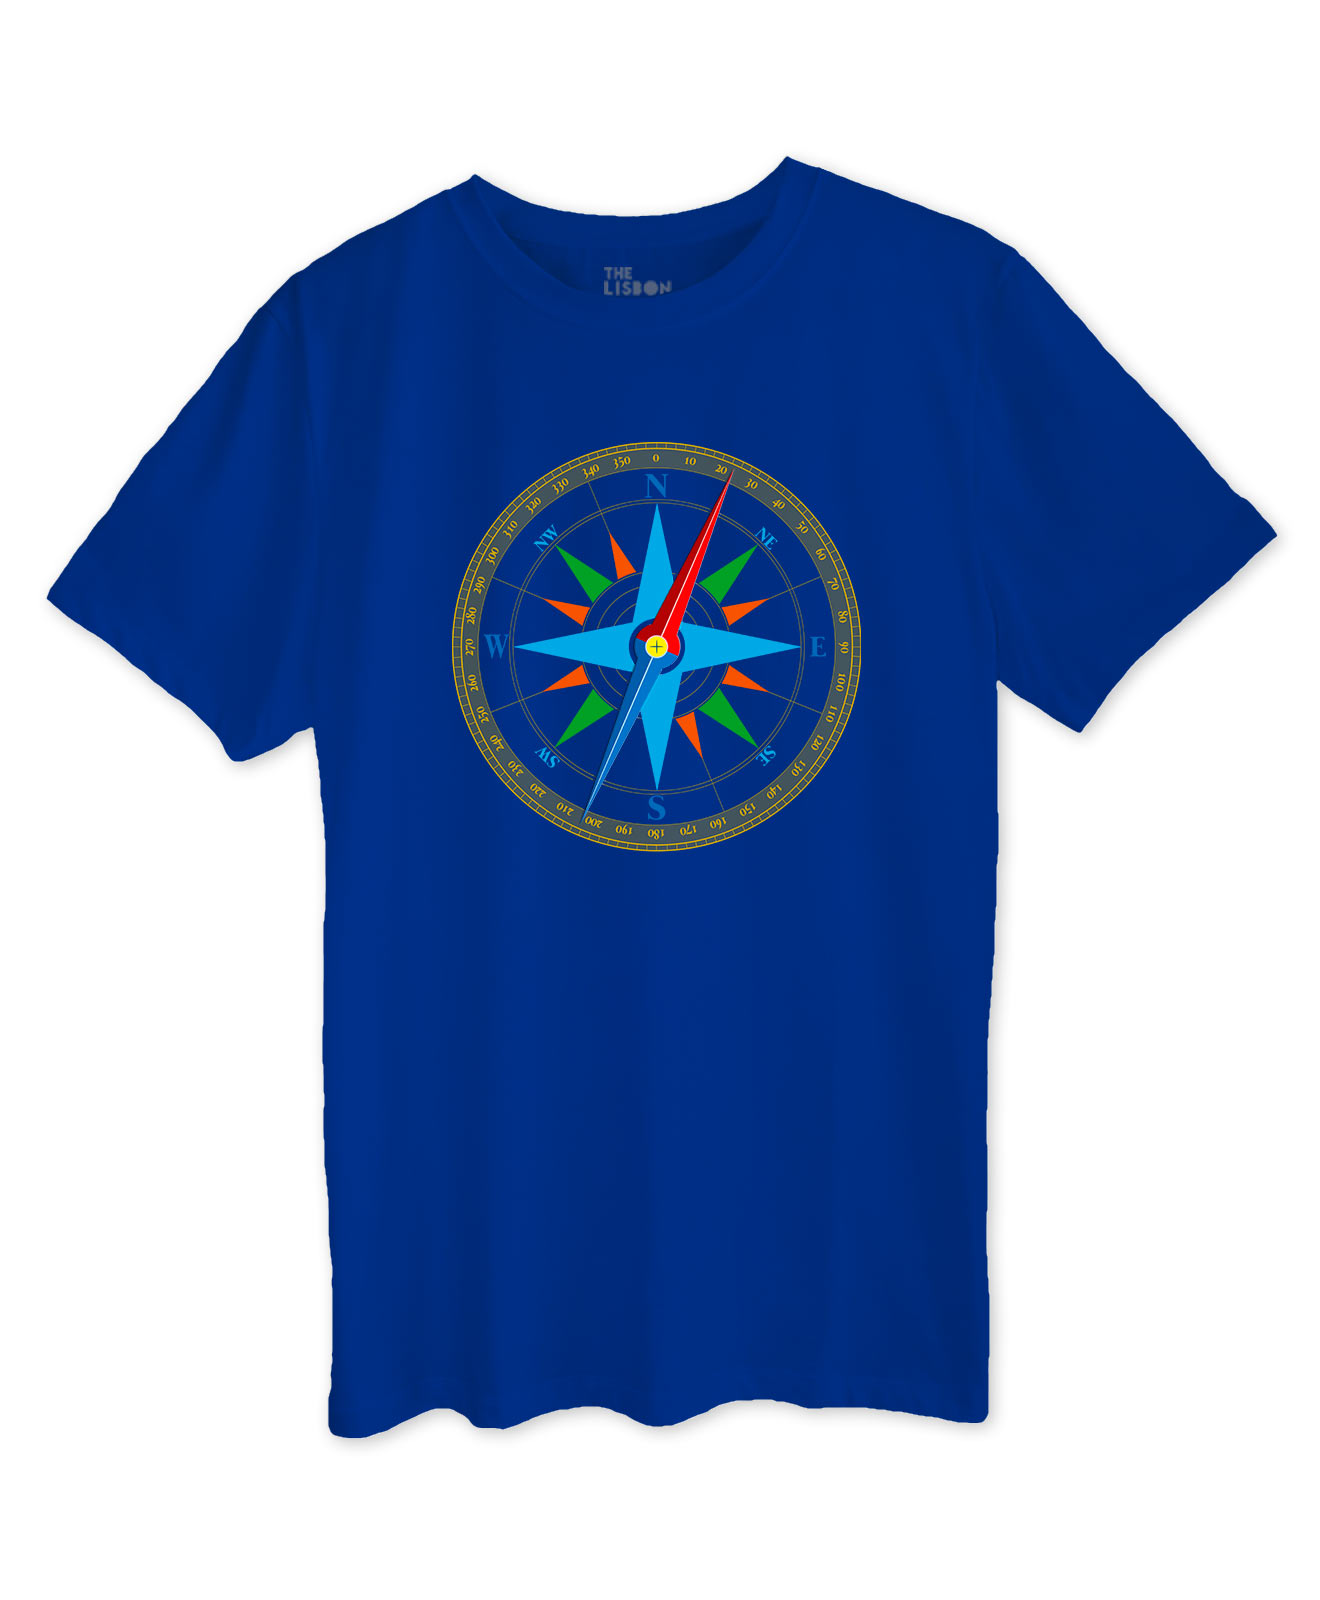 wind rose t-shirt